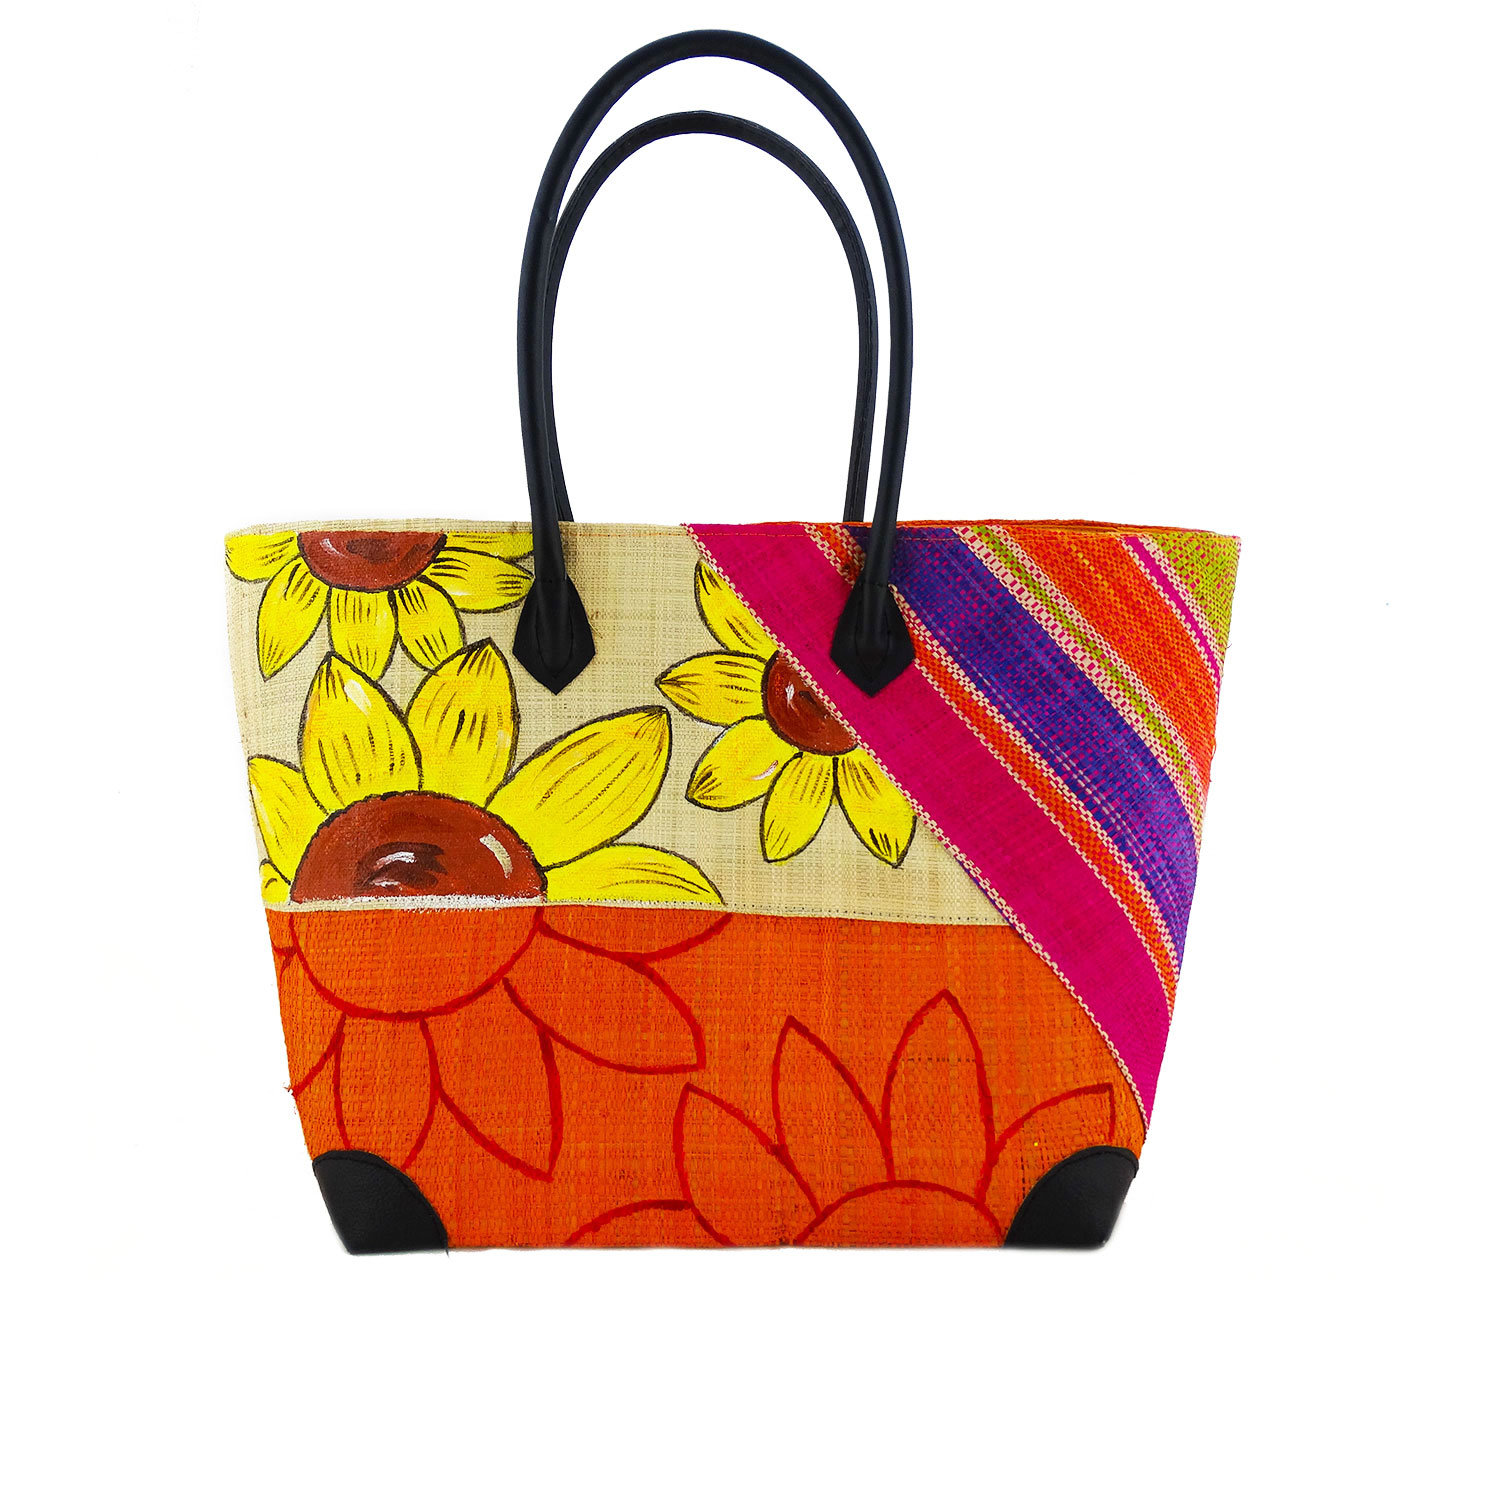 Handpainted bag - Sunflowers